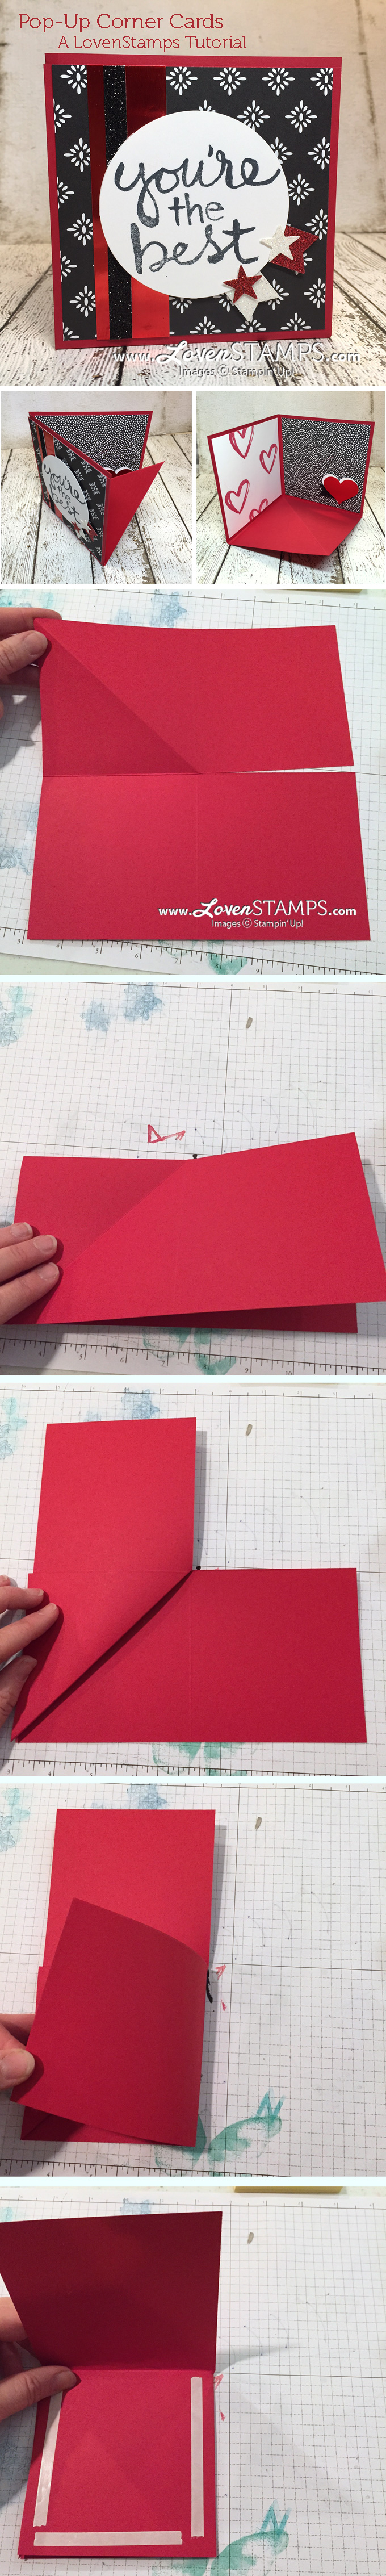 LovenStamps Video Tutorial: How to make a Pop-Up Corner Card, all supplies by Stampin' Up!